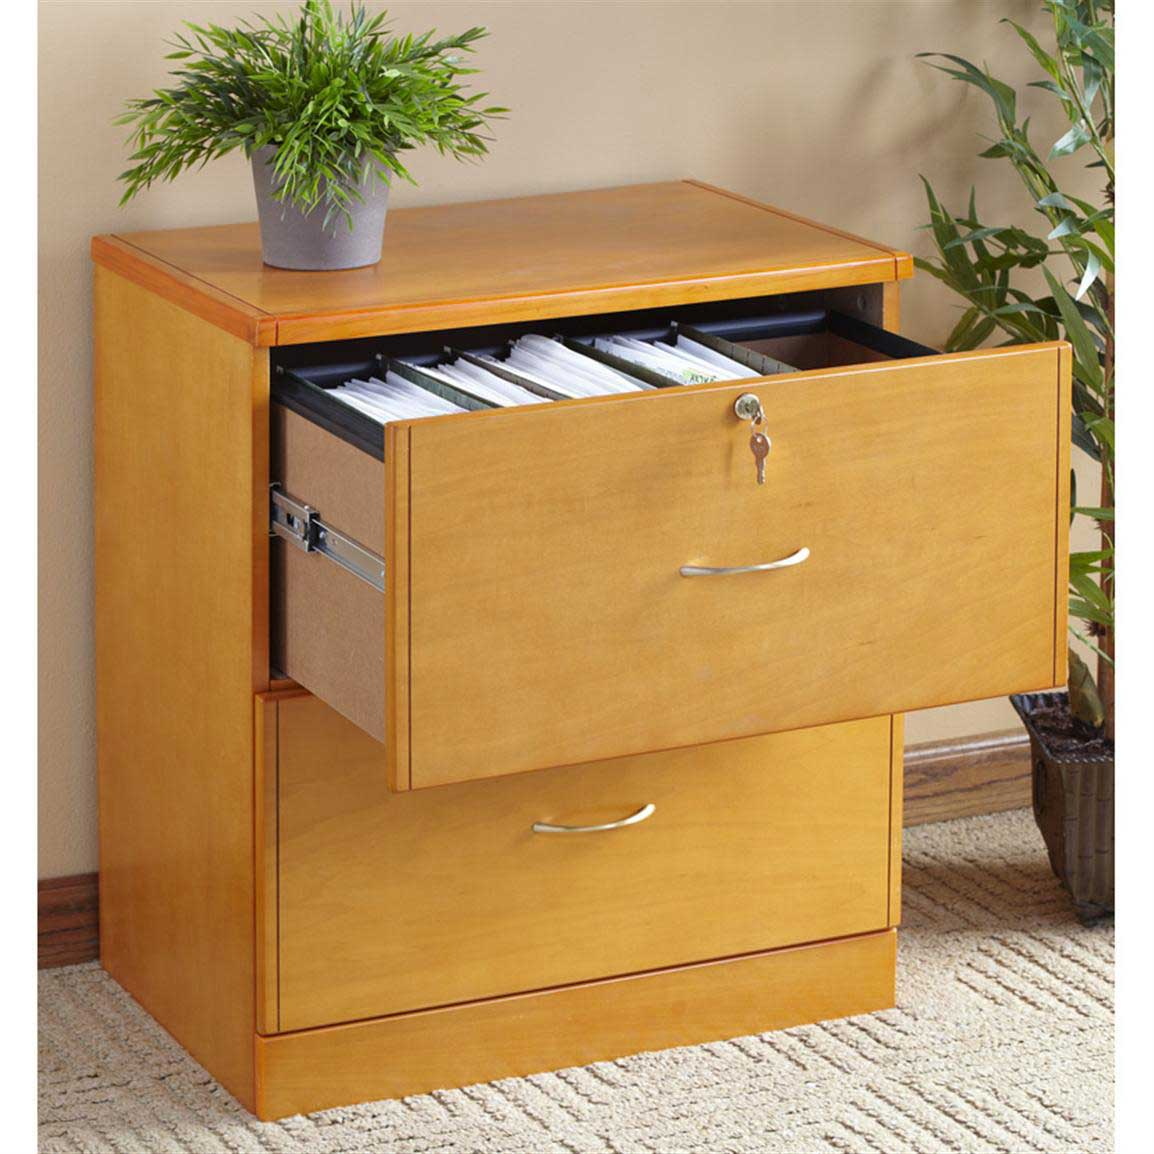 Studio RTA wooden storage cabinet with 2 drawer